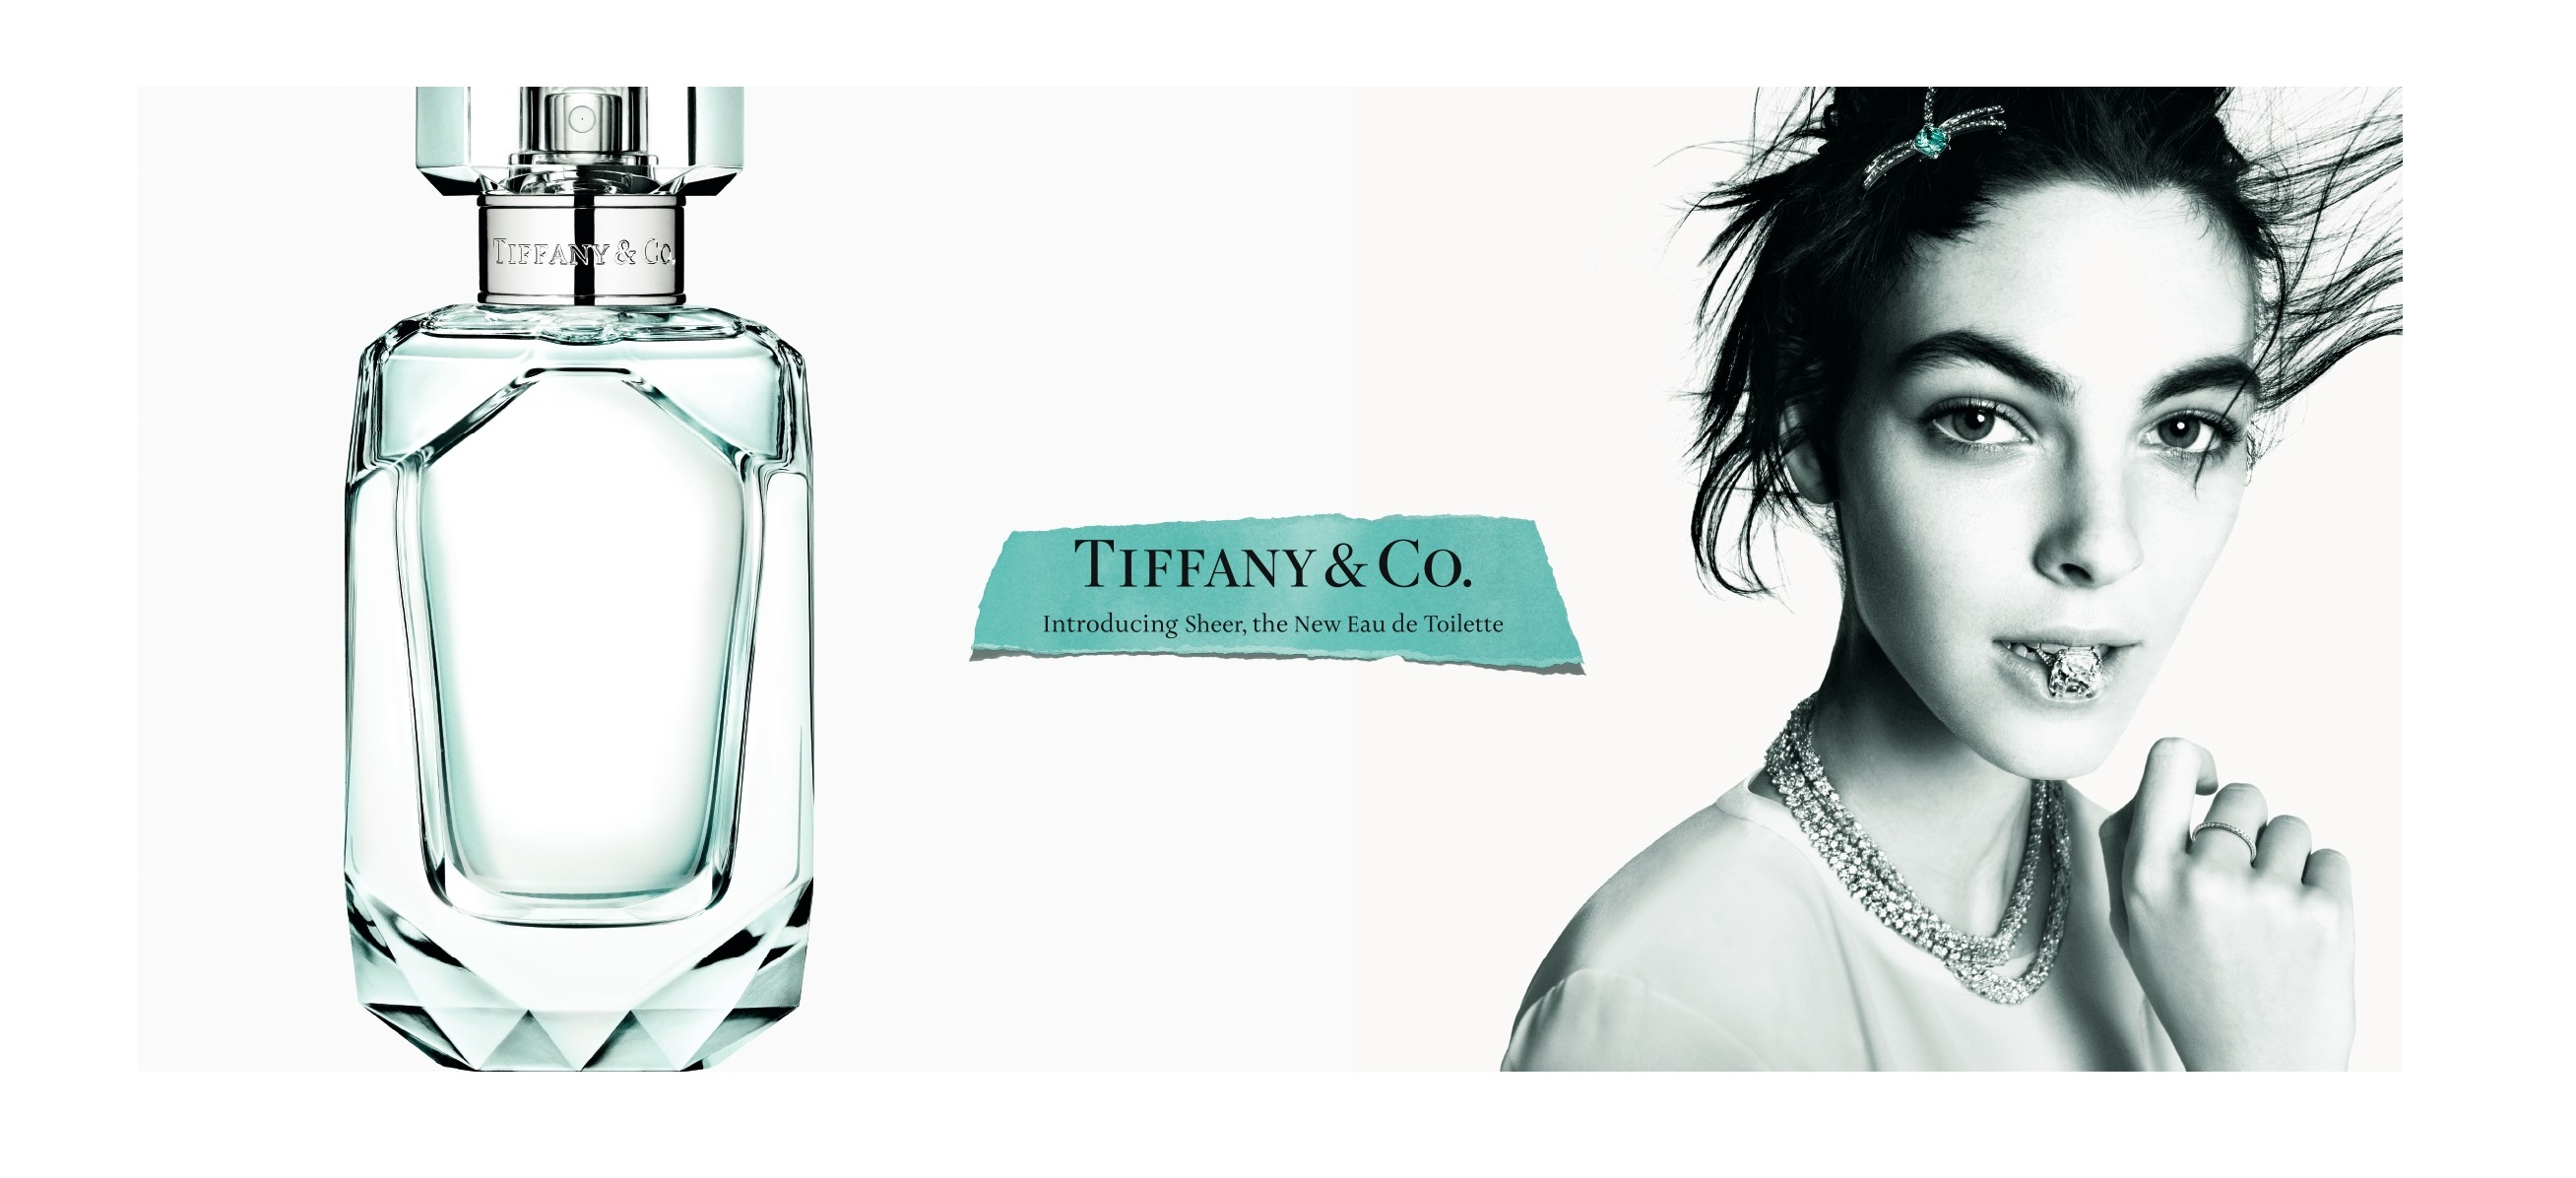 Tiffany & Co, parfume, sheer